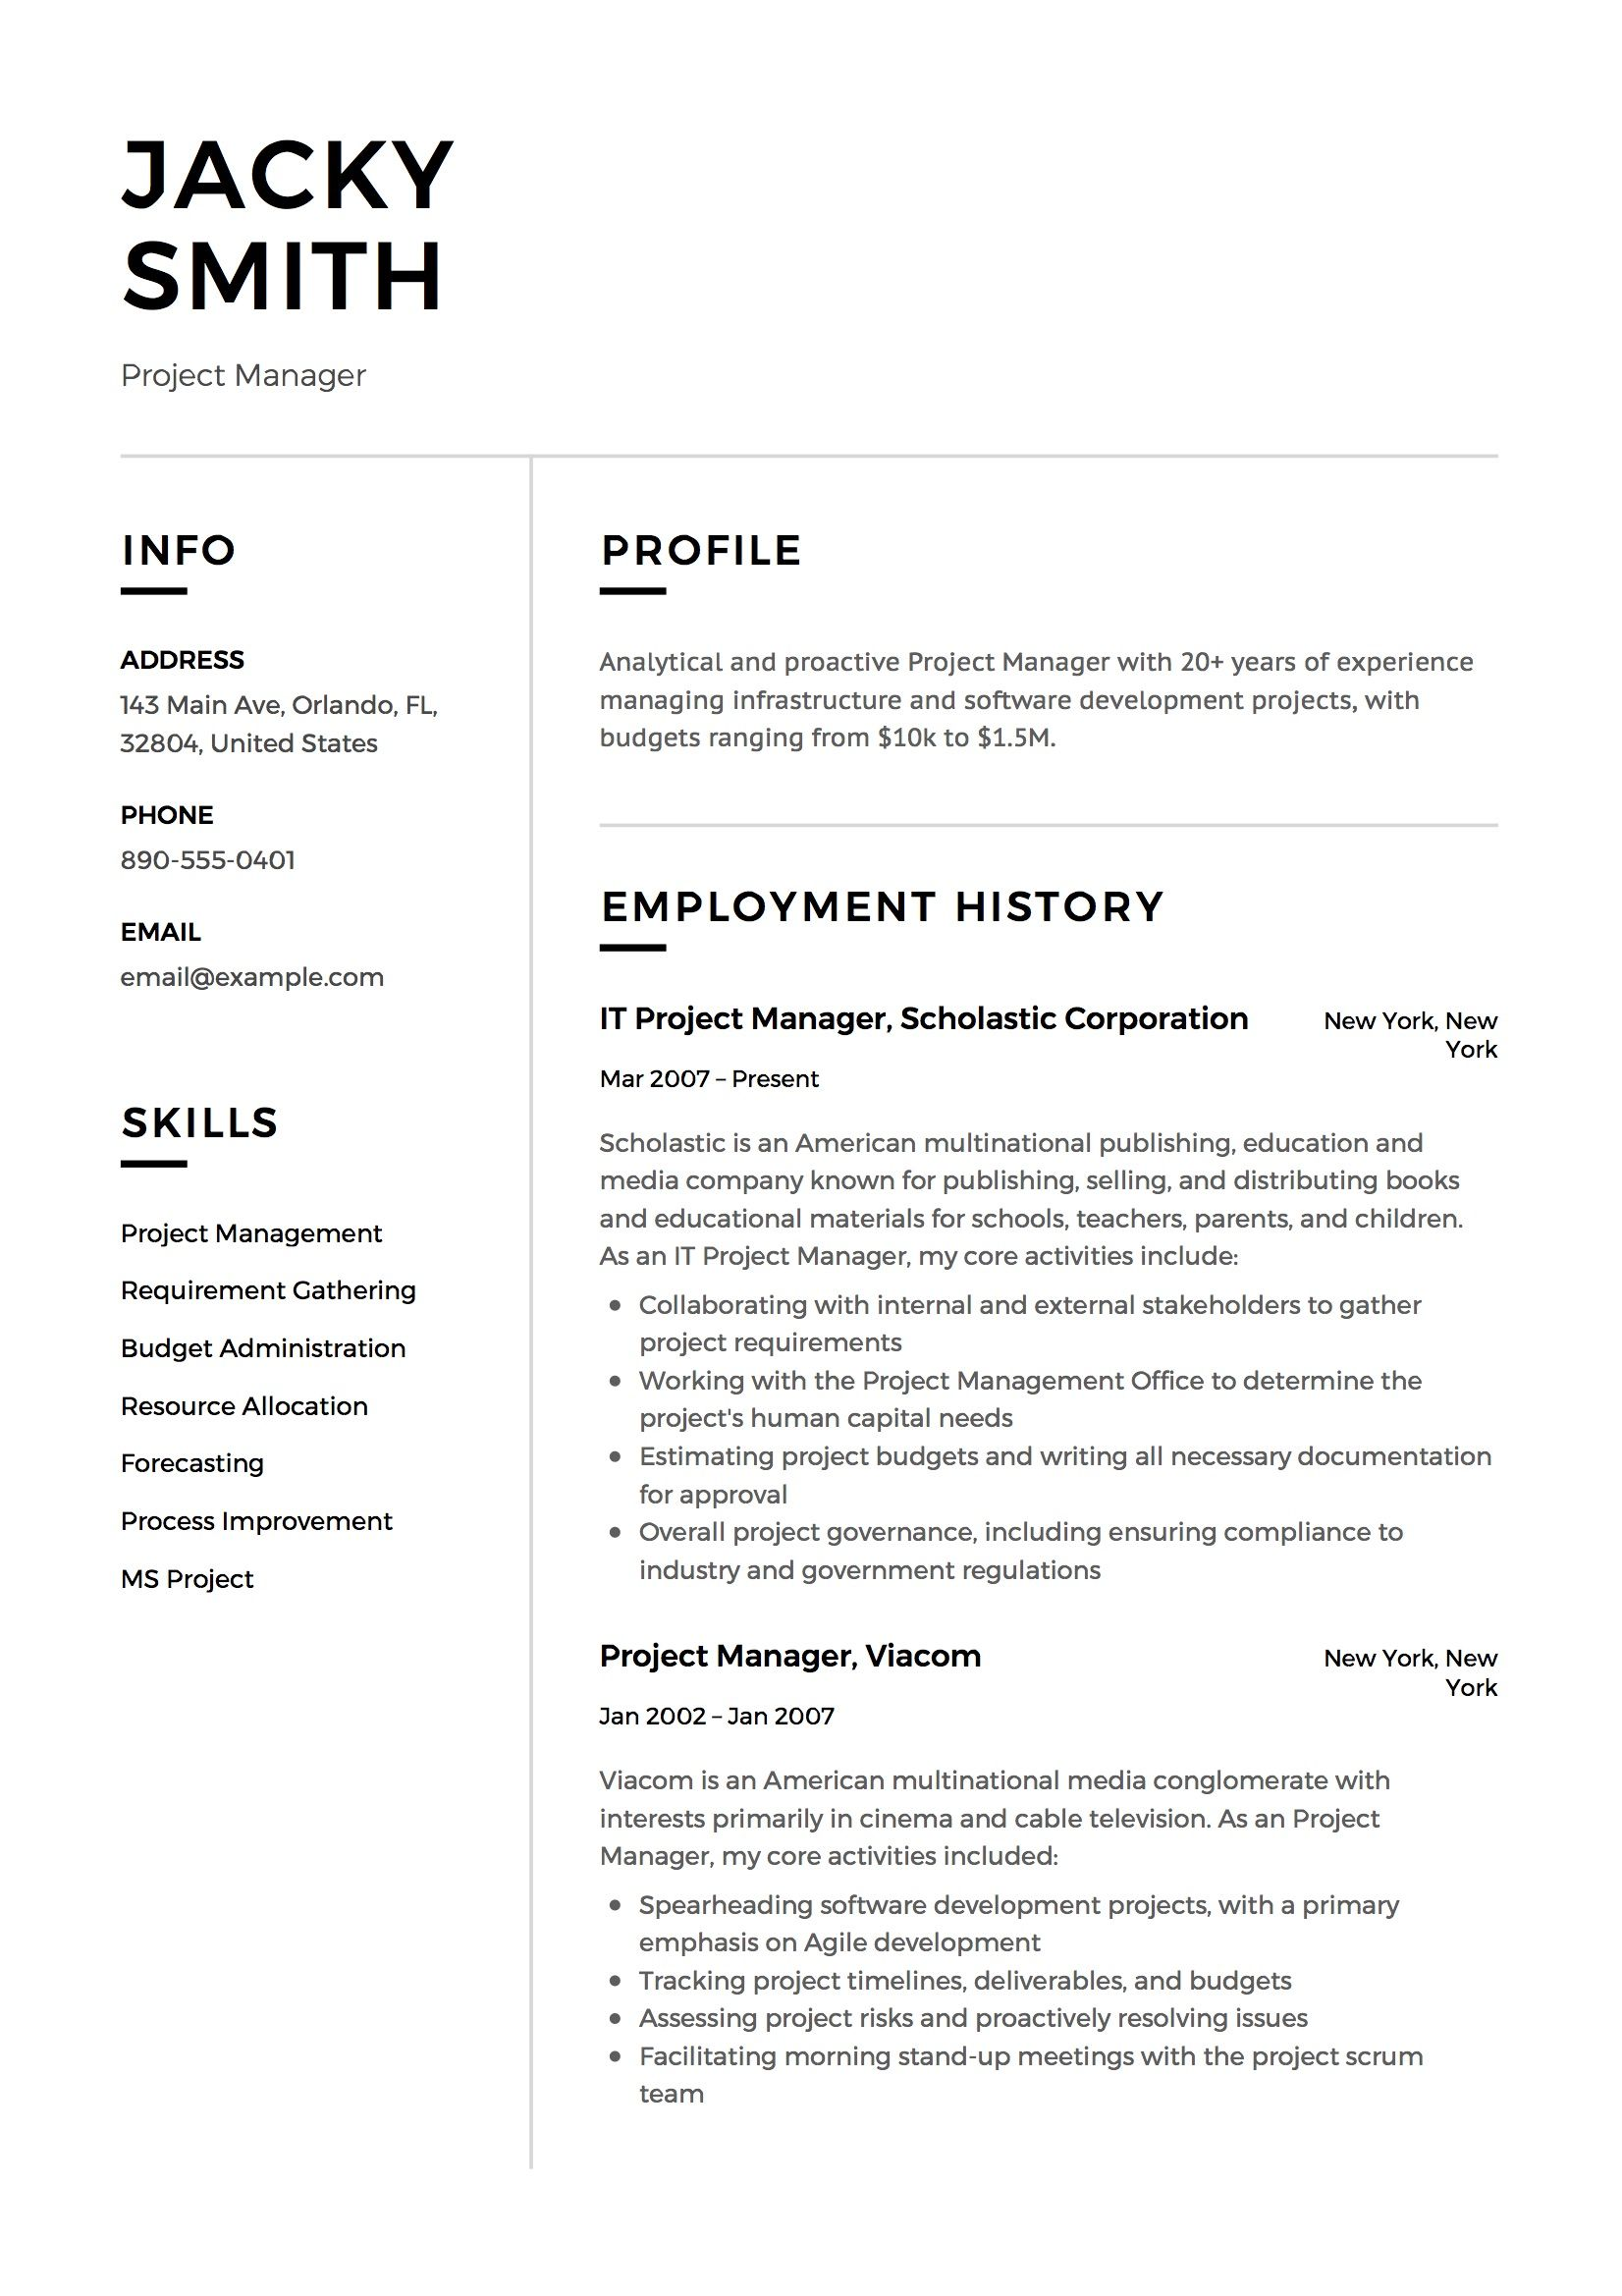 Project Manager Resume Example Project Manager Resume Home Health Aide Resume Examples